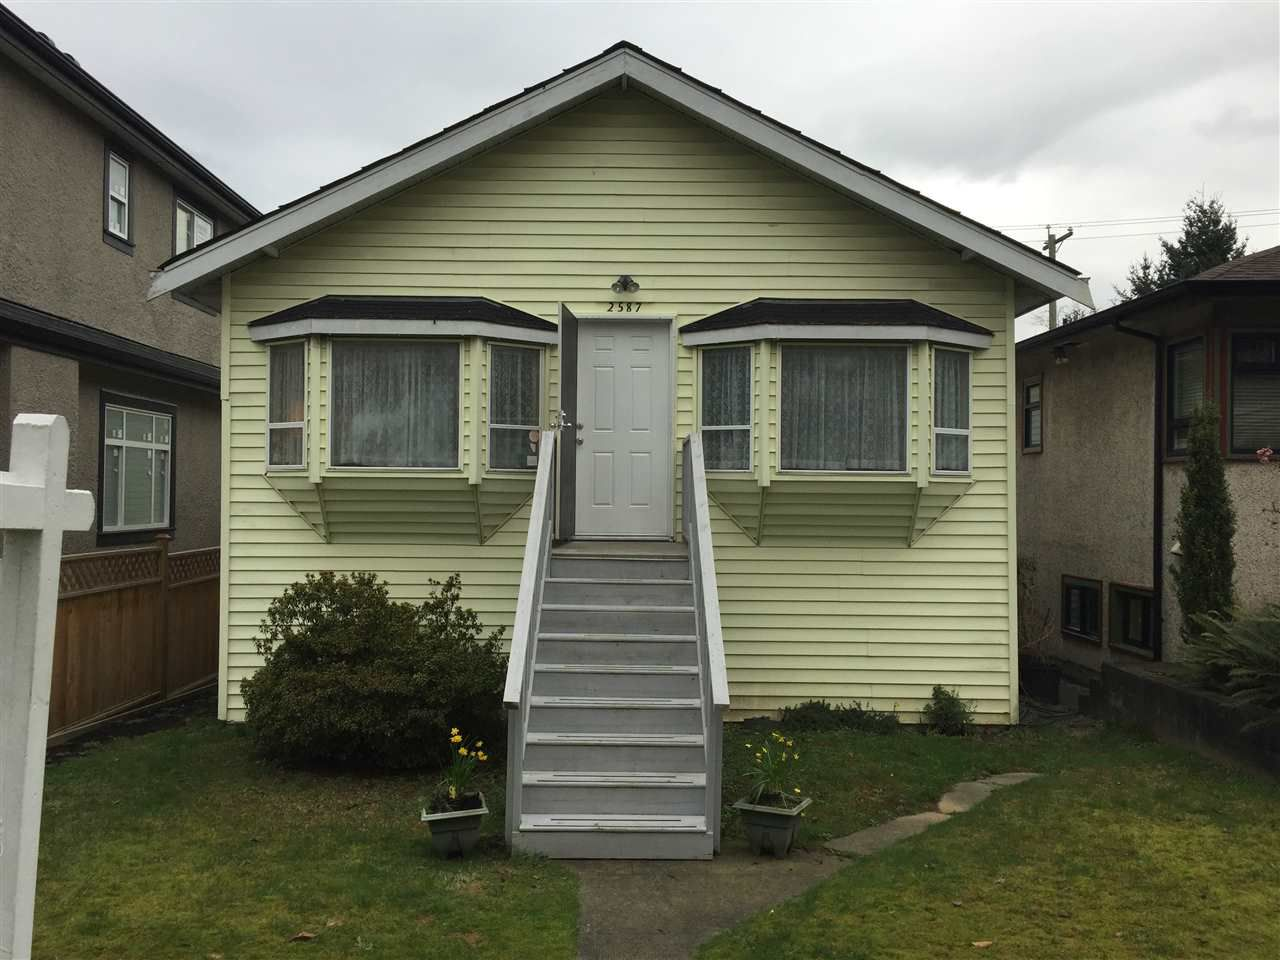 Main Photo: 2587 E 28 Avenue in Vancouver: Collingwood VE House for sale (Vancouver East)  : MLS®# R2036060